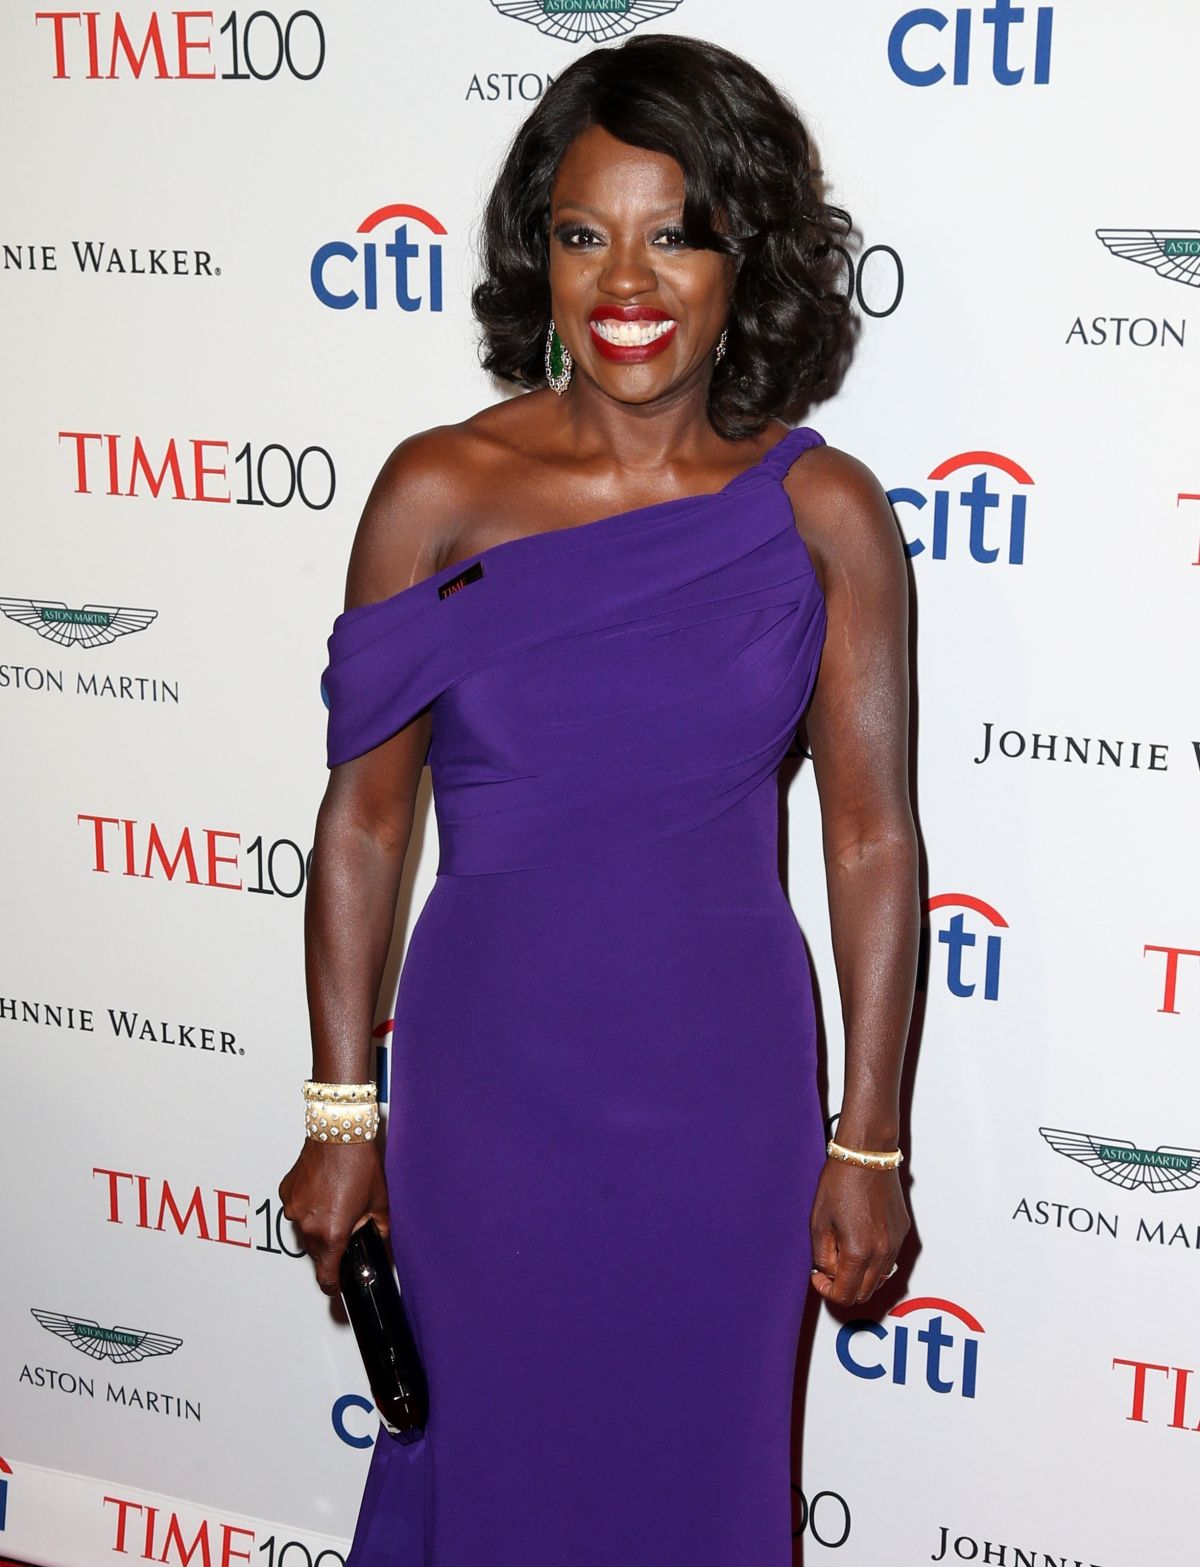 VIOLA DAVIS at 2017 Time 100 Gala in New York 04/25/2017